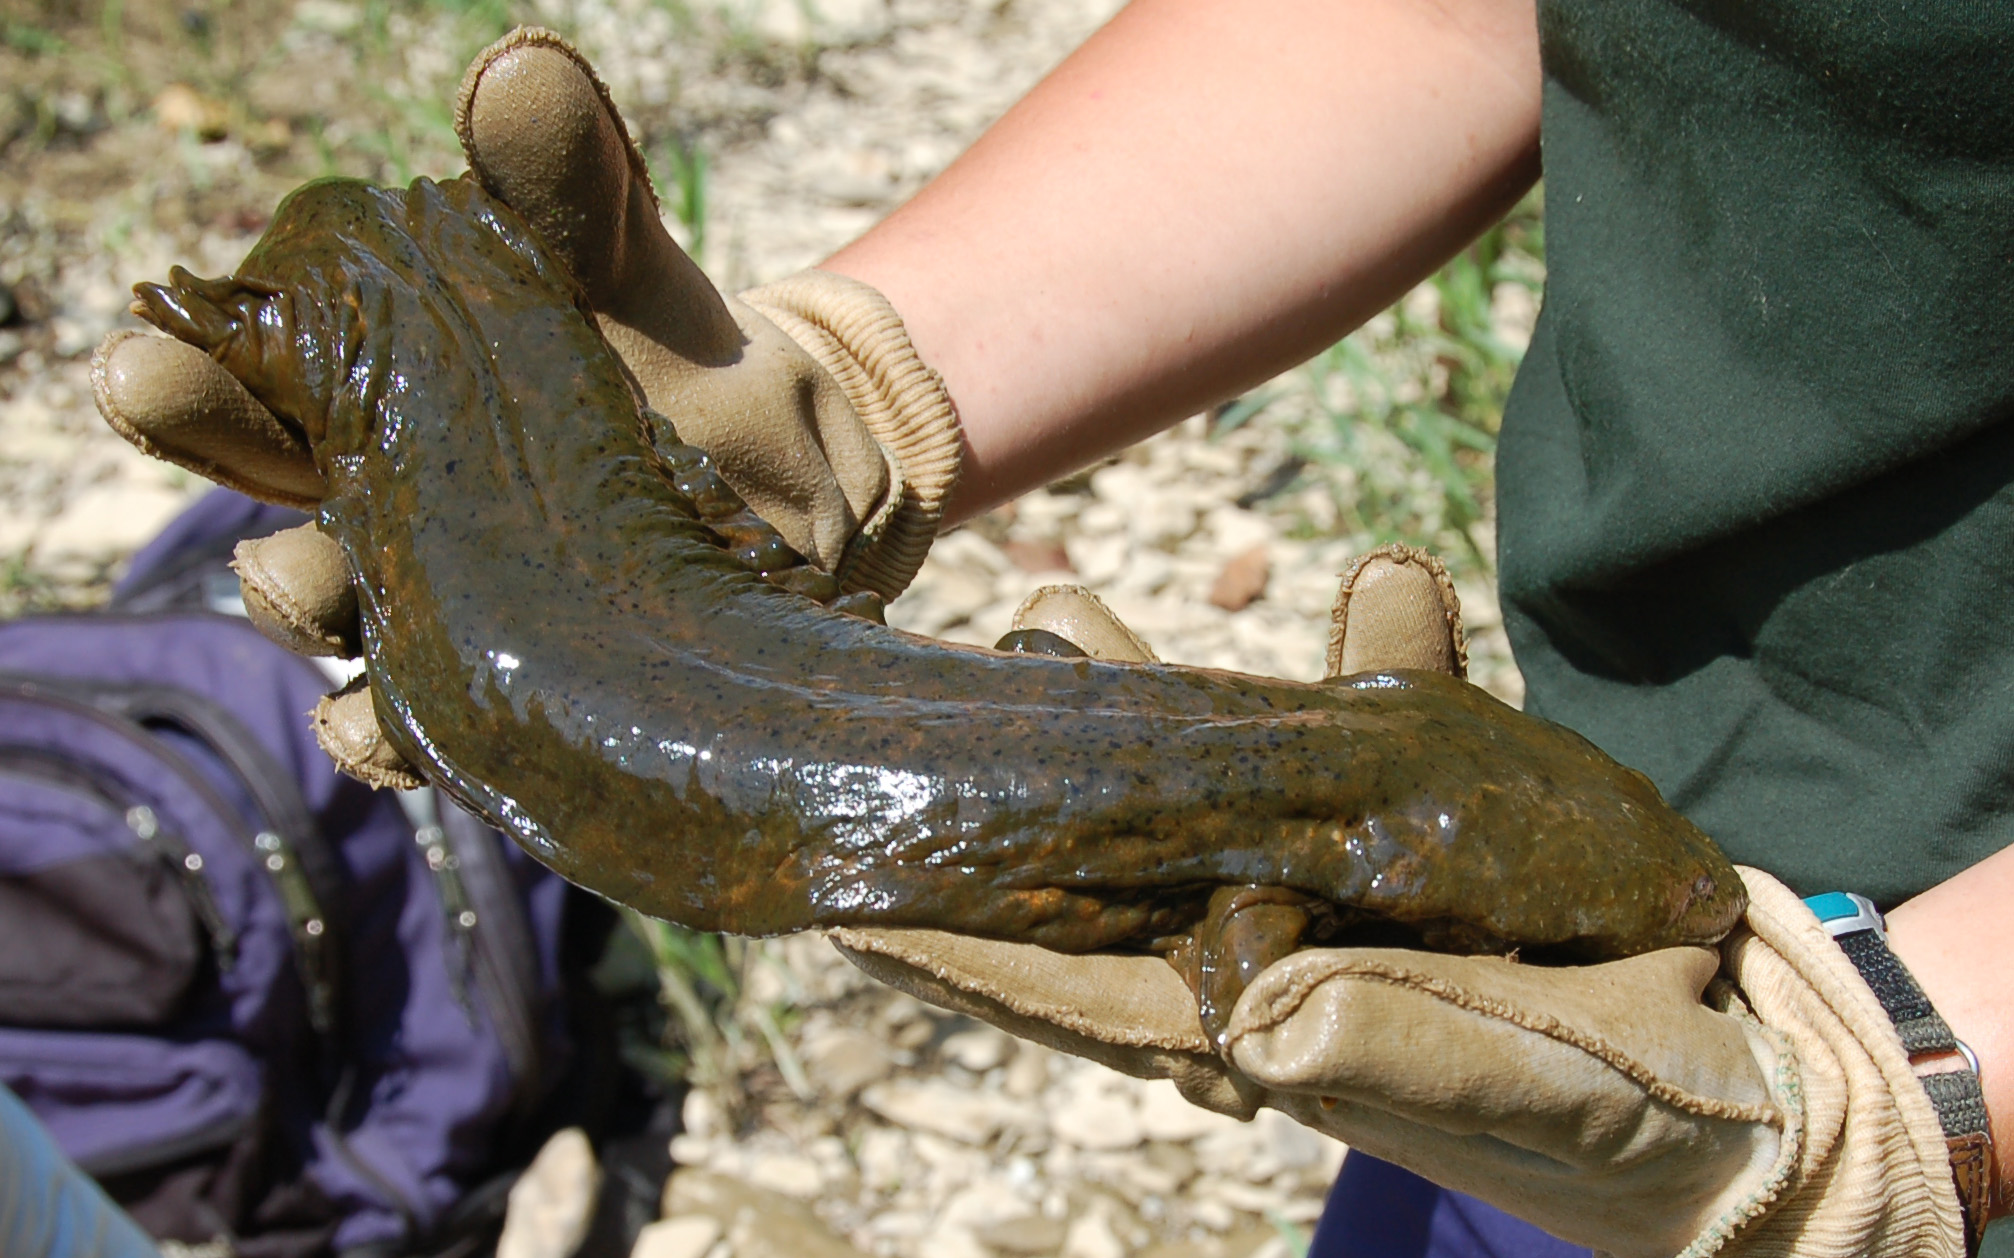 Is it a Hellbender or Mudpuppy?